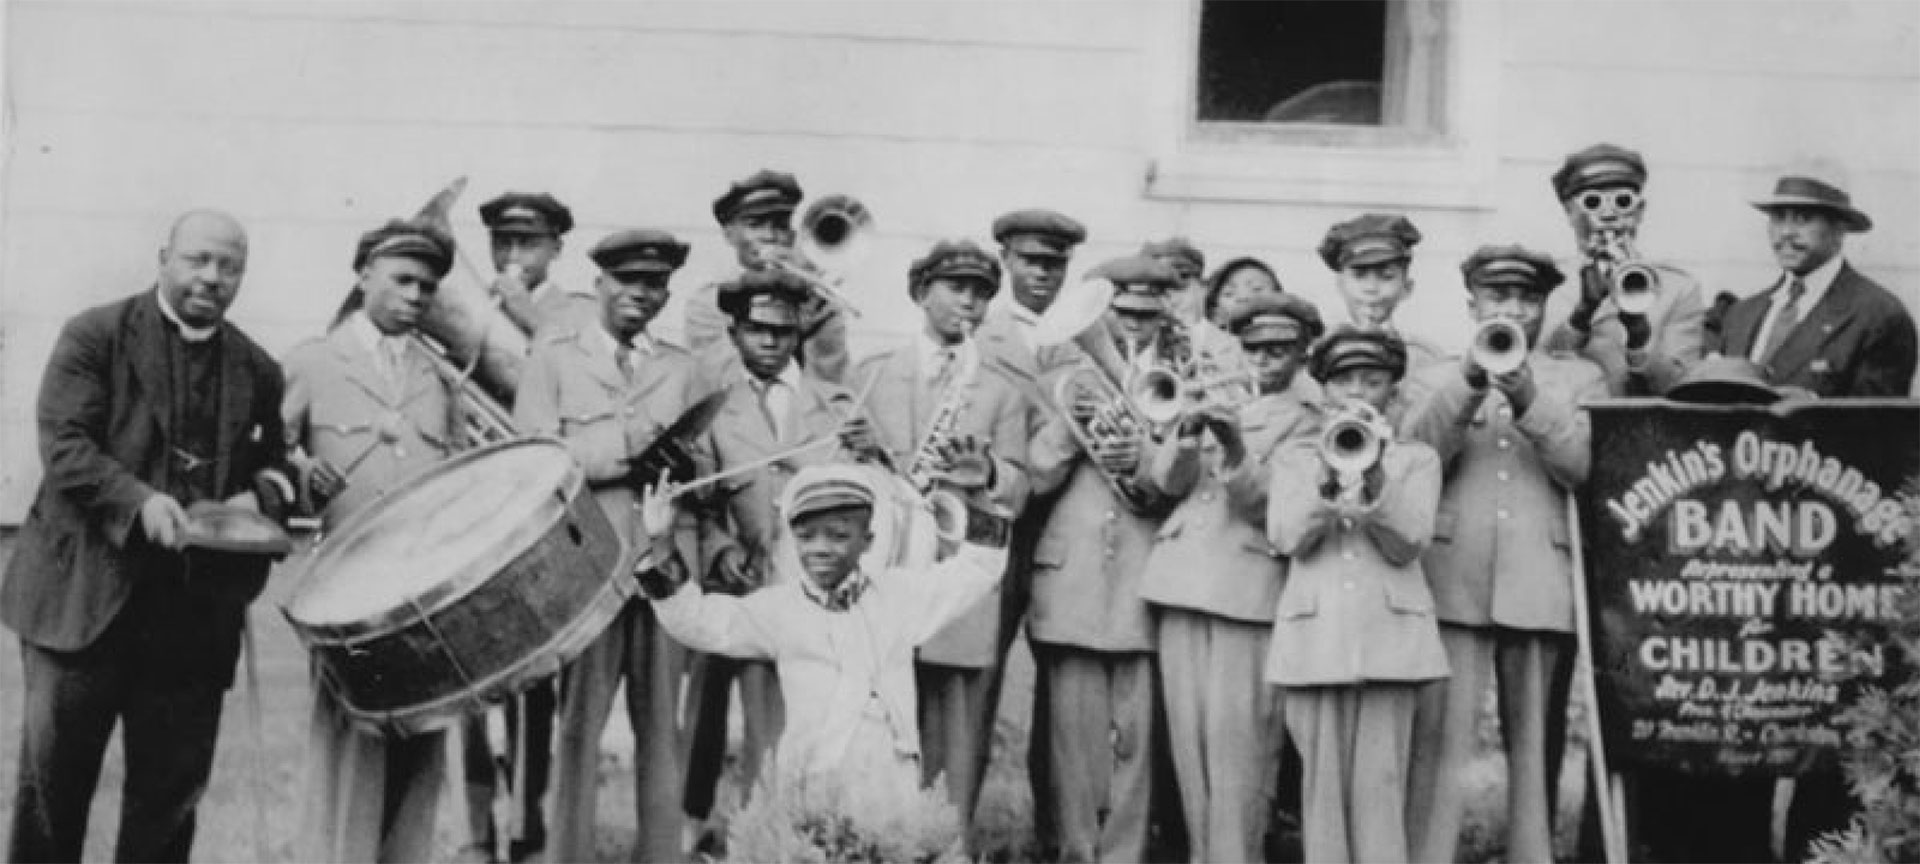 Historic photo shows the Jenkins' Orphanage Band in uniform